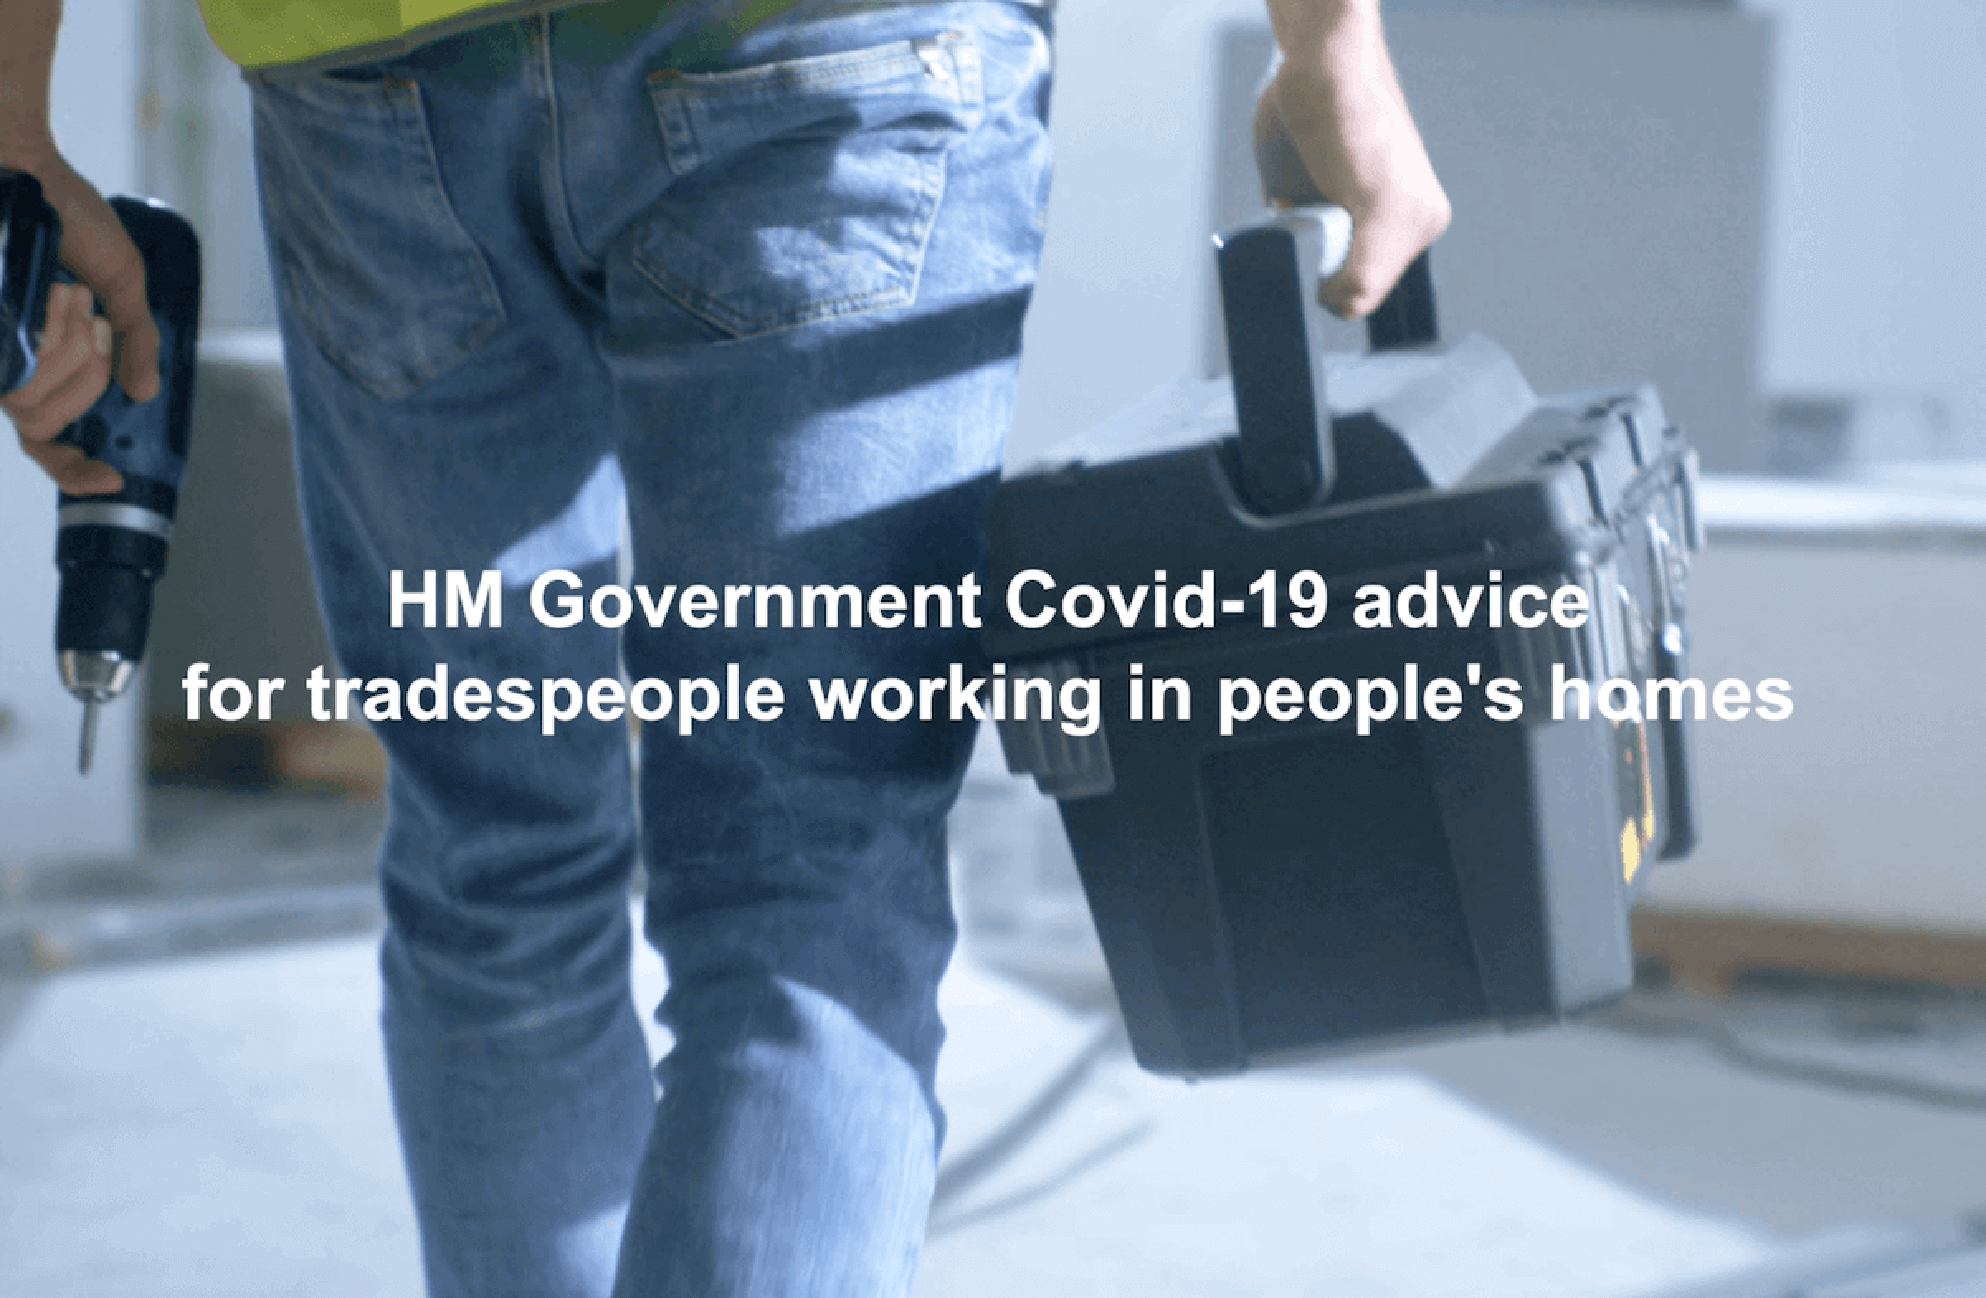 COVID-19 Guidance for homeowners & tradespeople